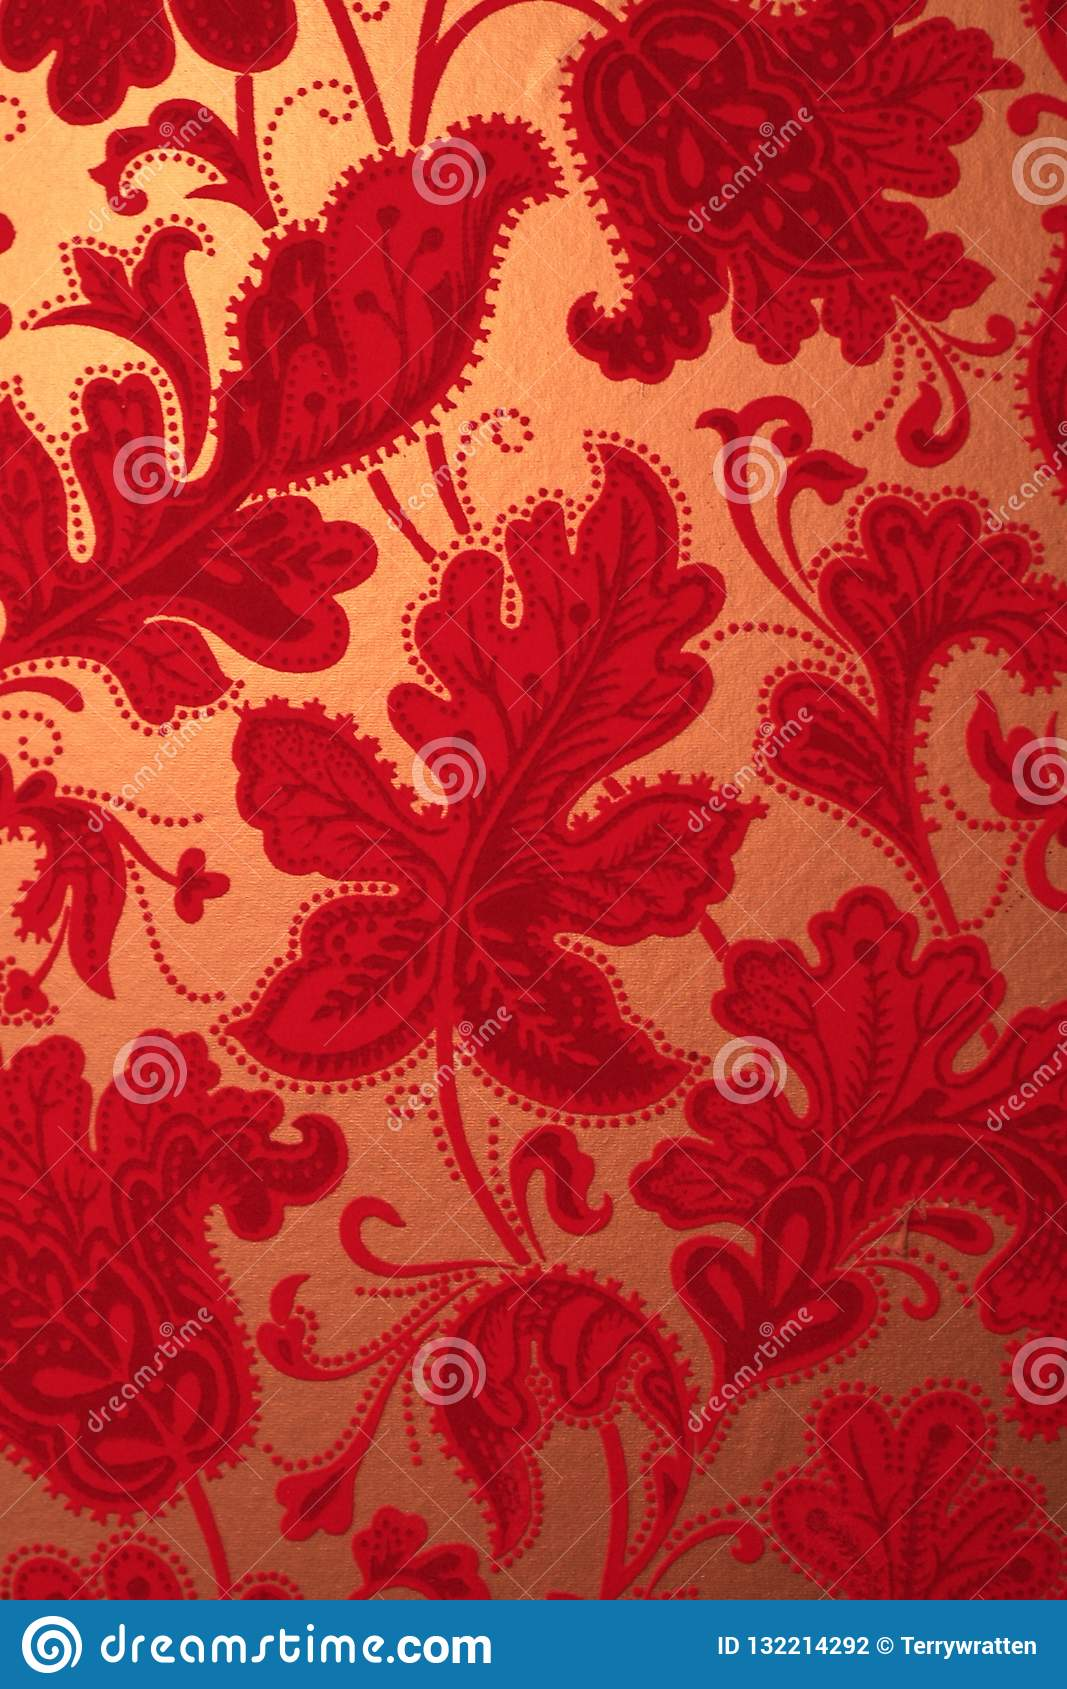 Retro Vintage Red Velvet Textured Wallpaper Stock Photo Image Of